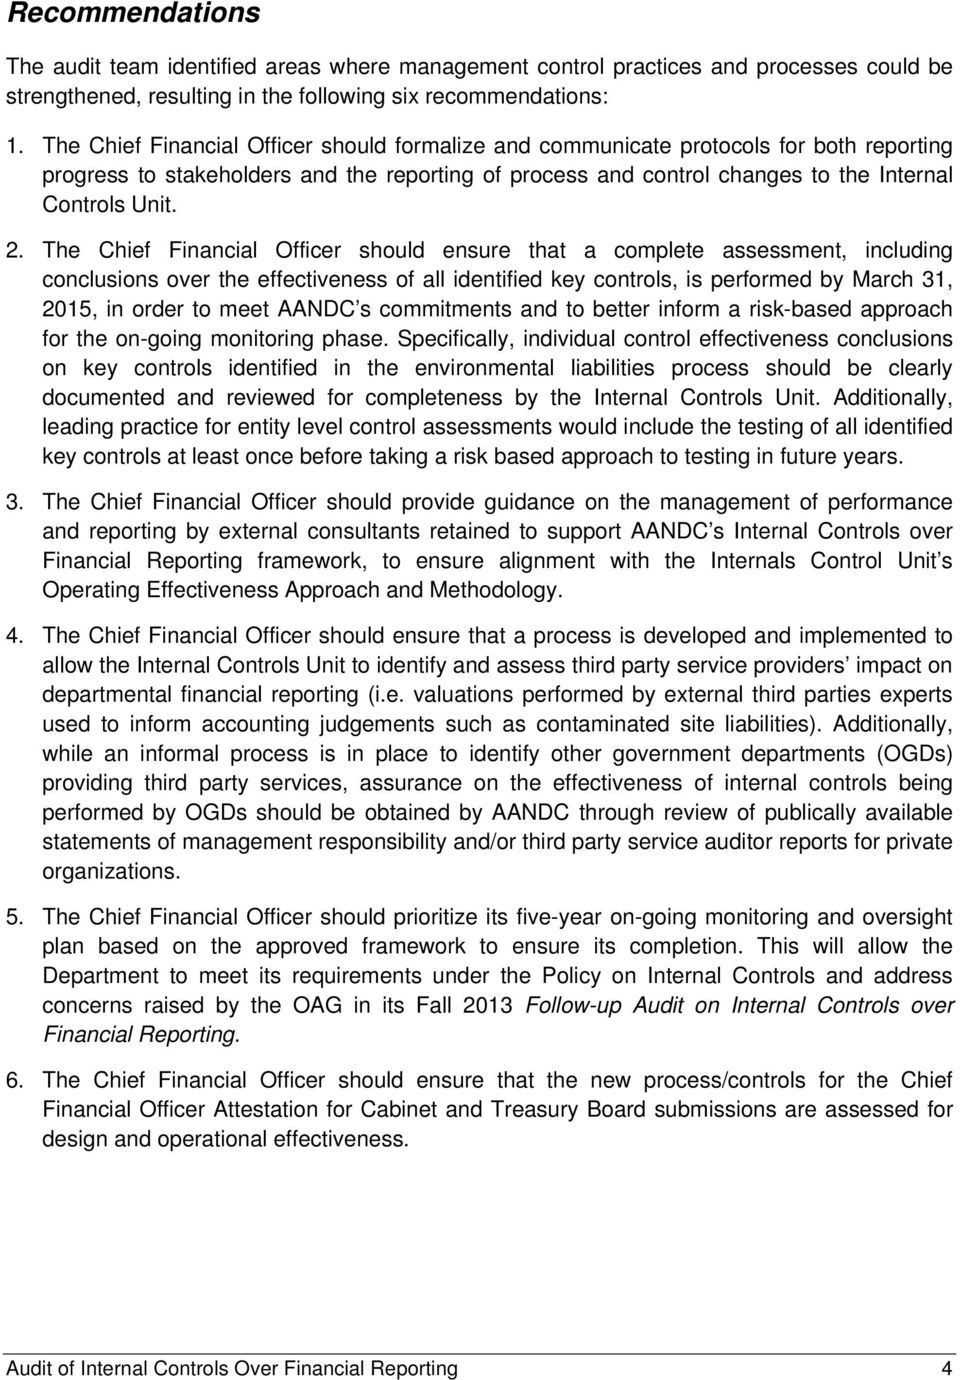 The Chief Financial Officer should ensure that a complete assessment, including conclusions over the effectiveness of all identified key controls, is performed by March 31, 2015, in order to meet